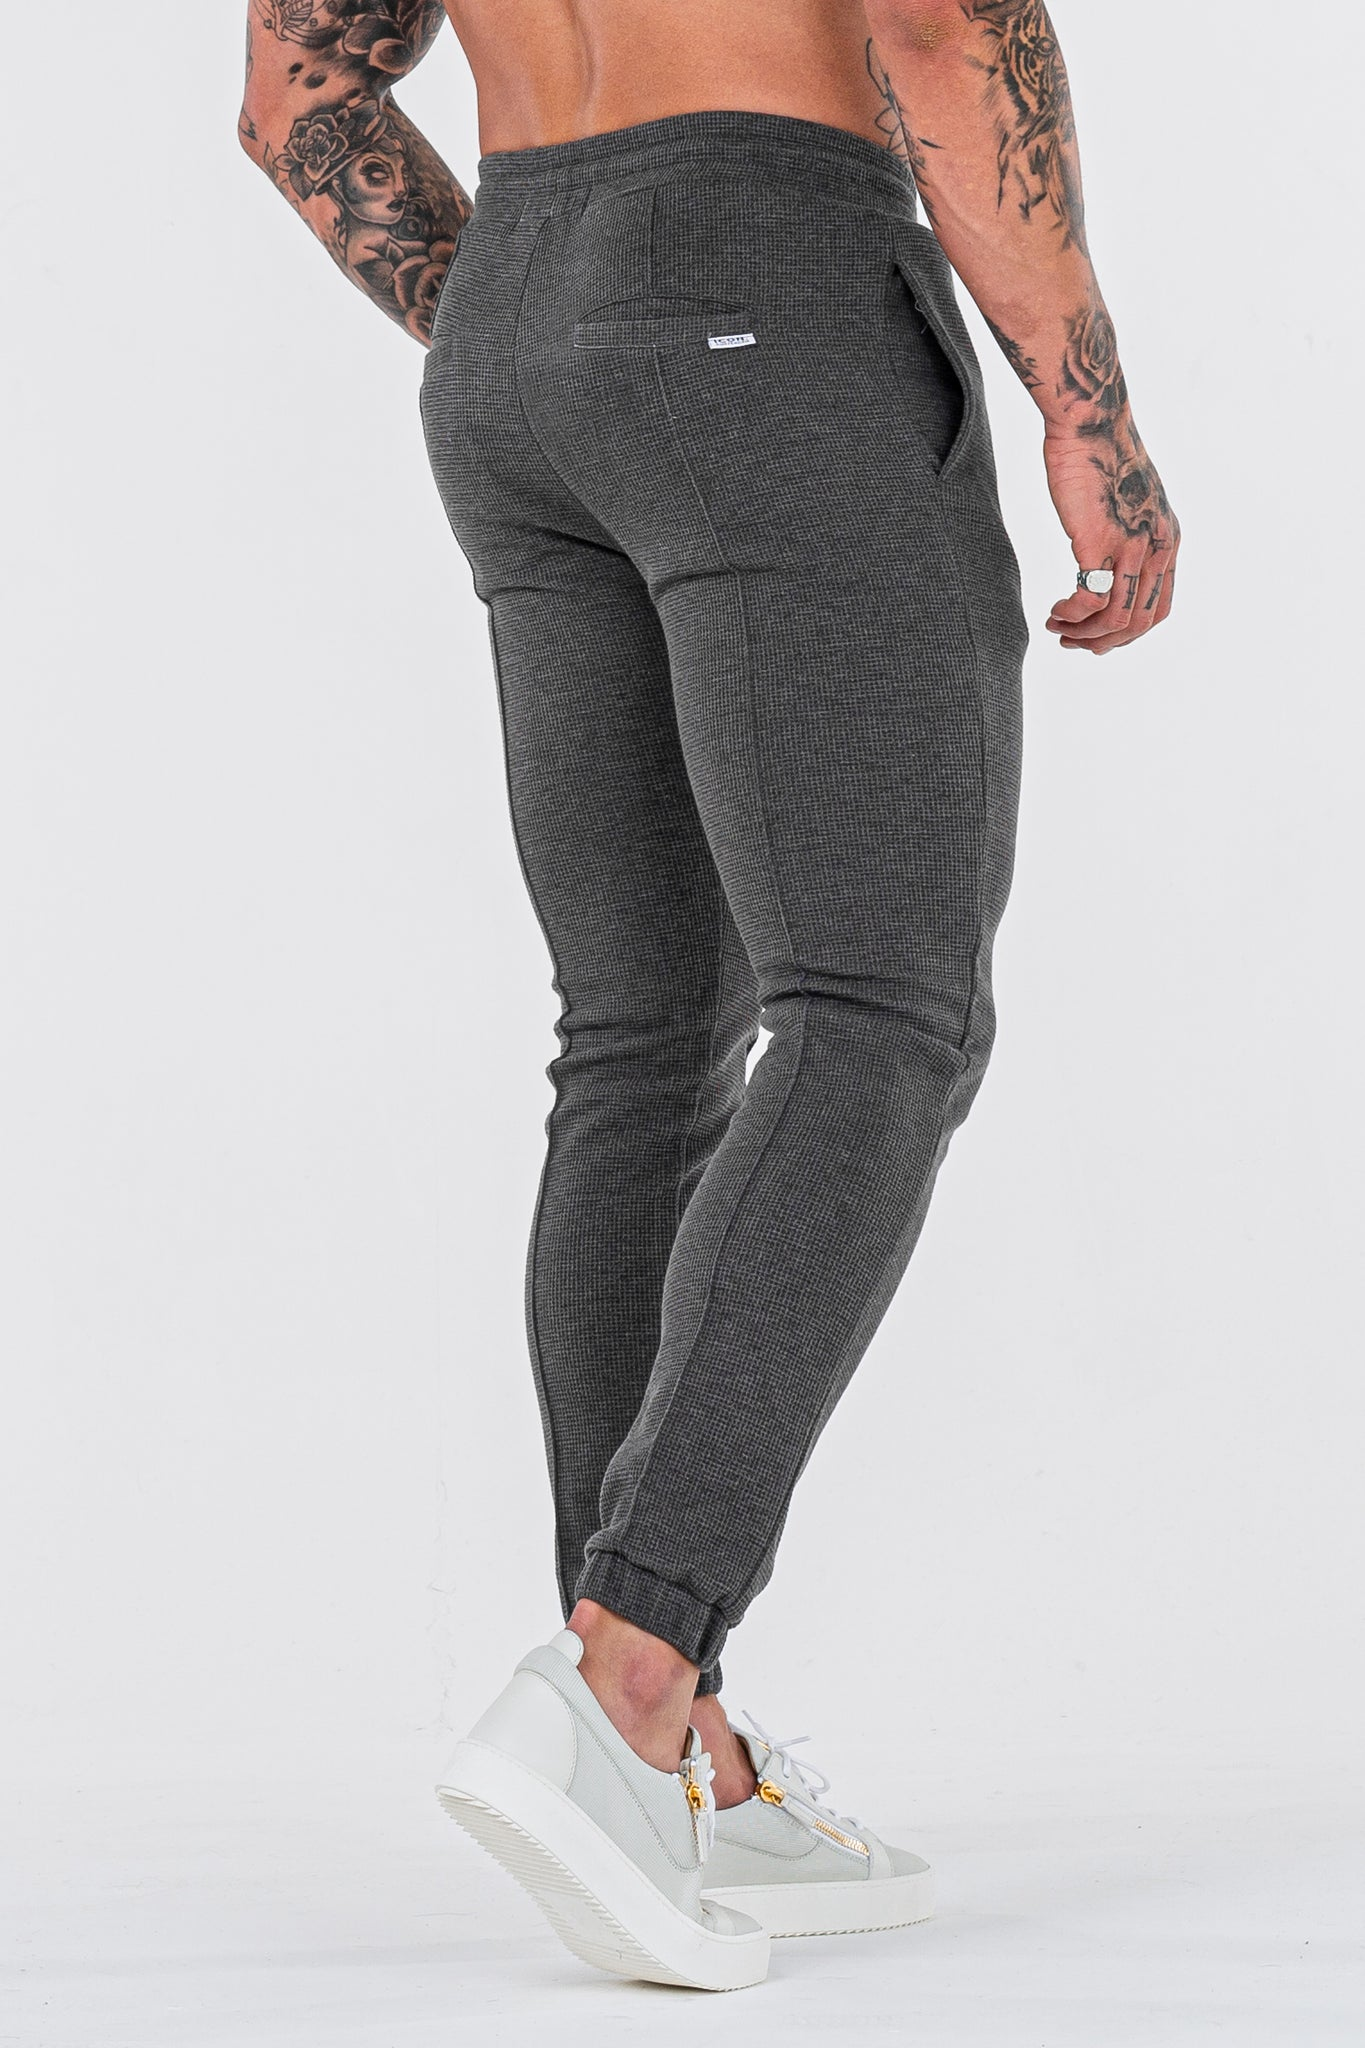 THE CAZA TROUSERS - CHARCOAL